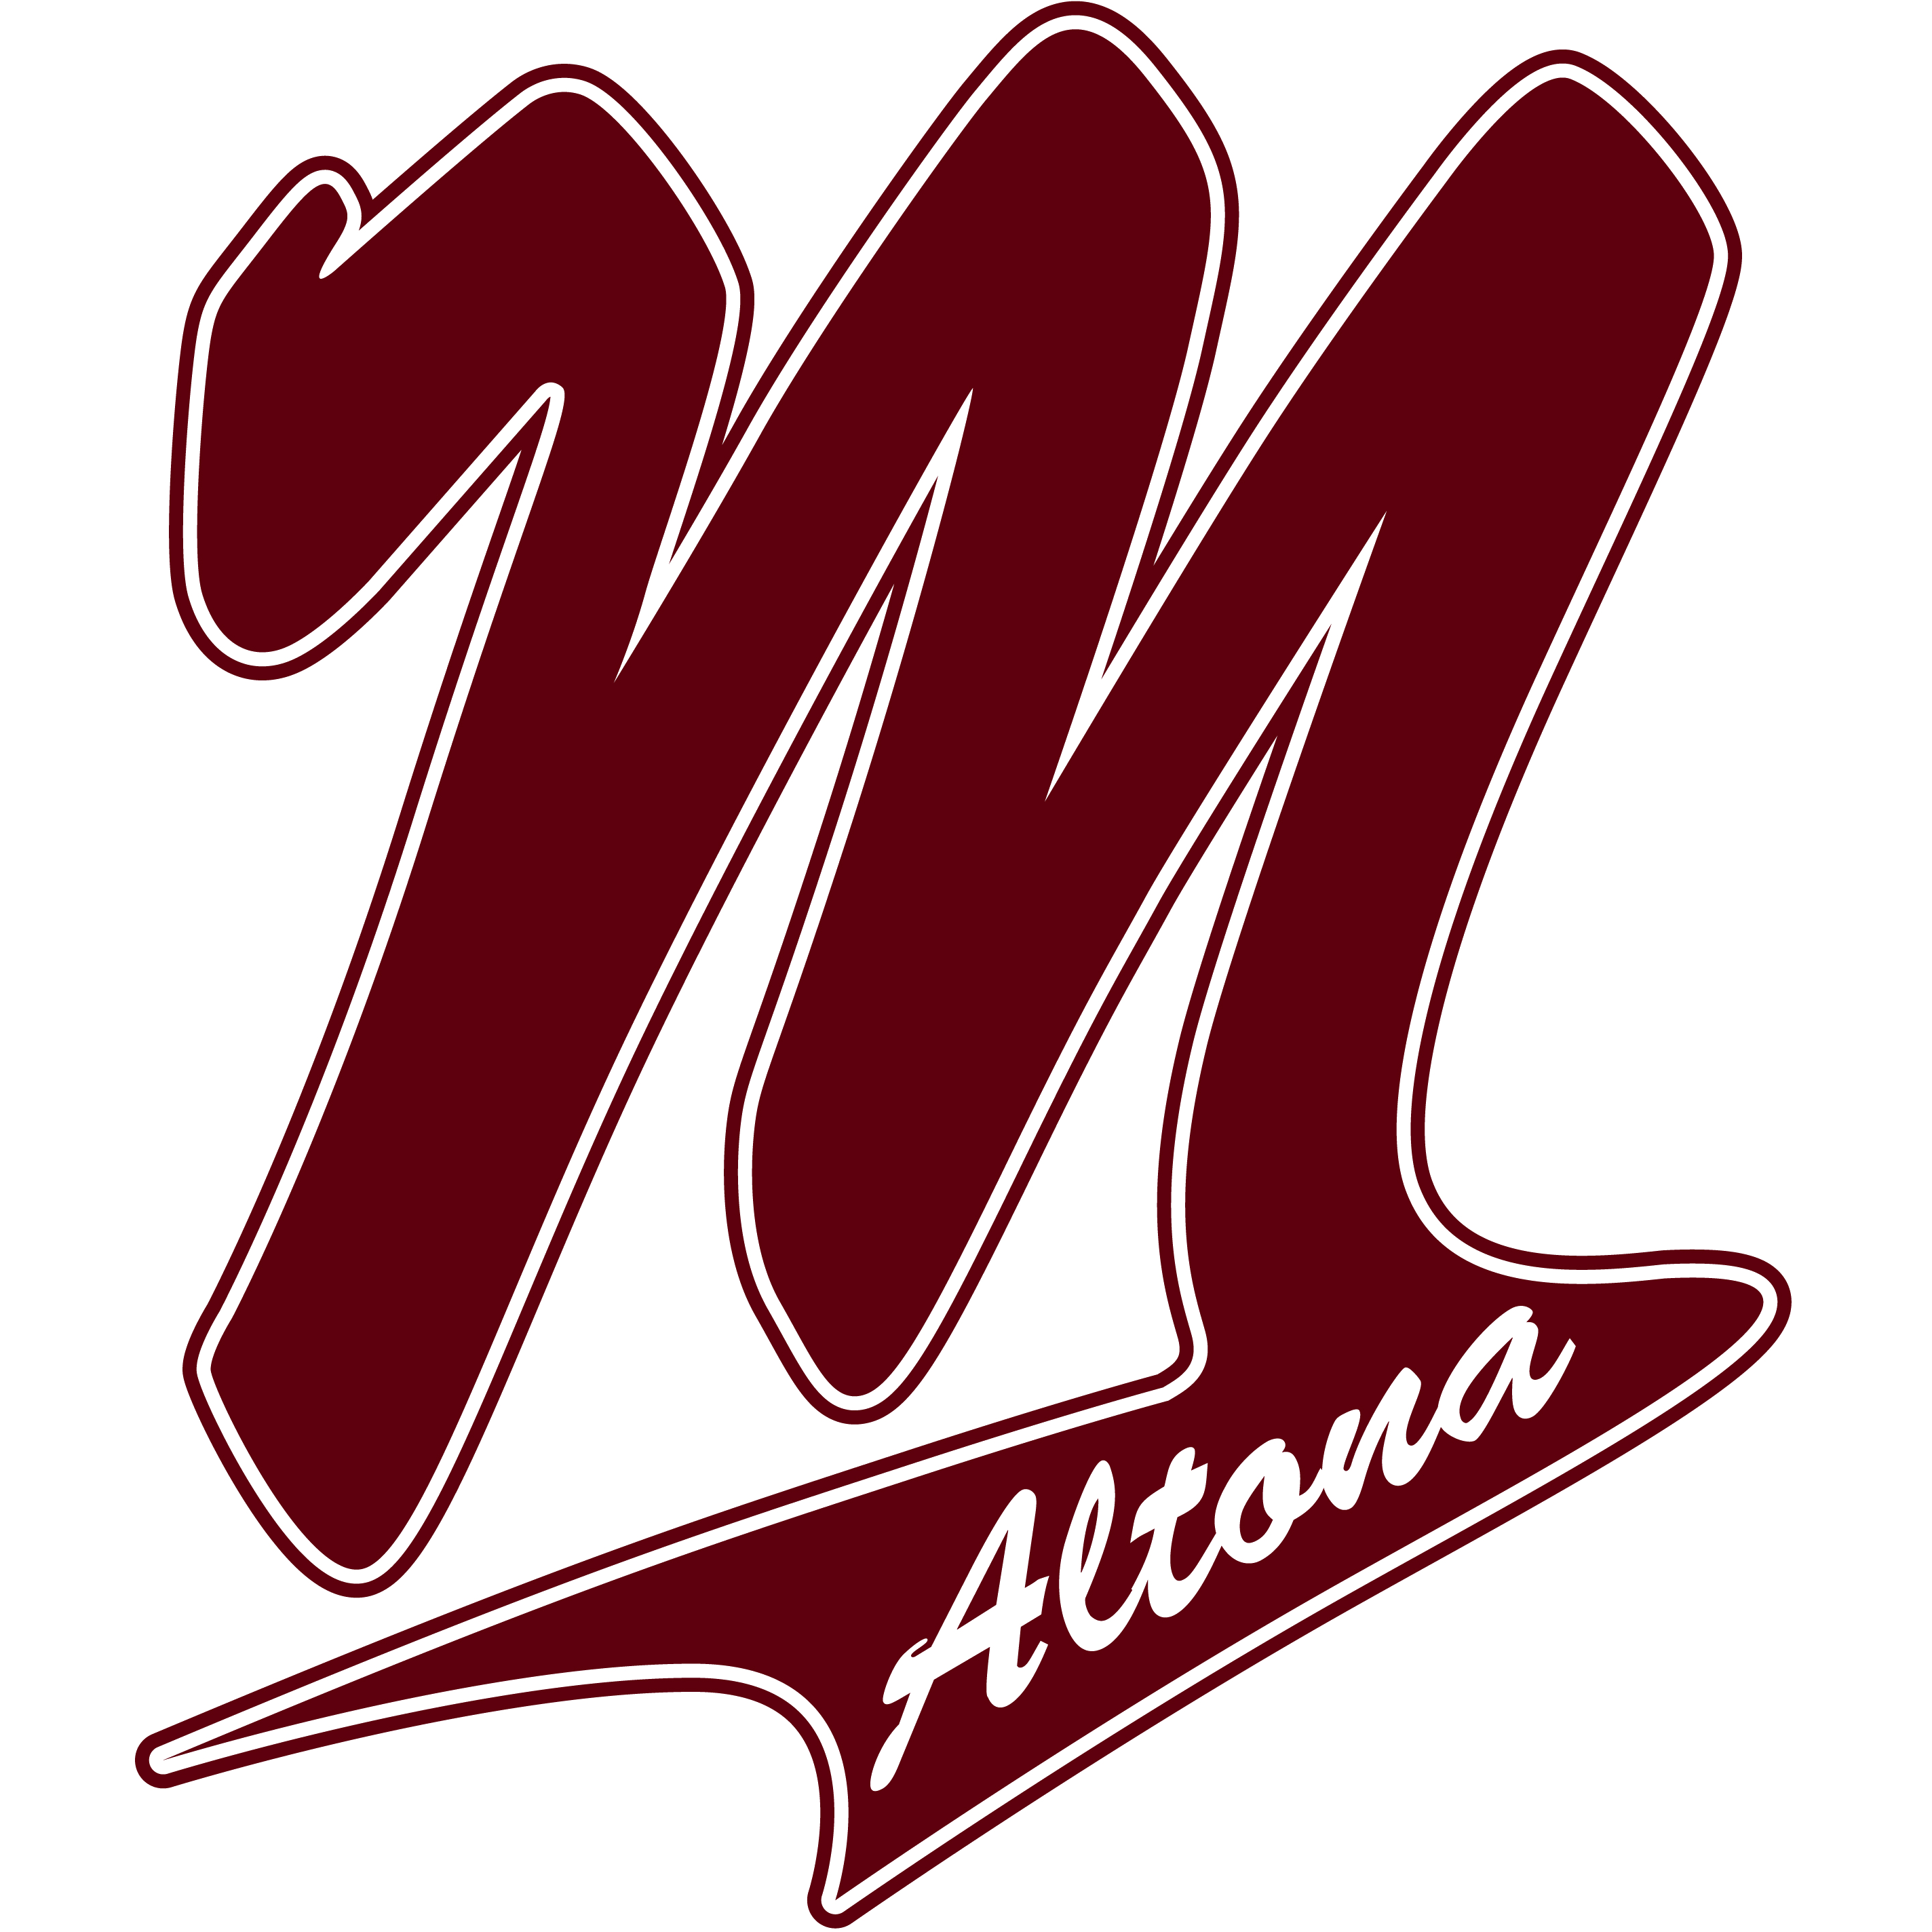 Altona Minor Hockey